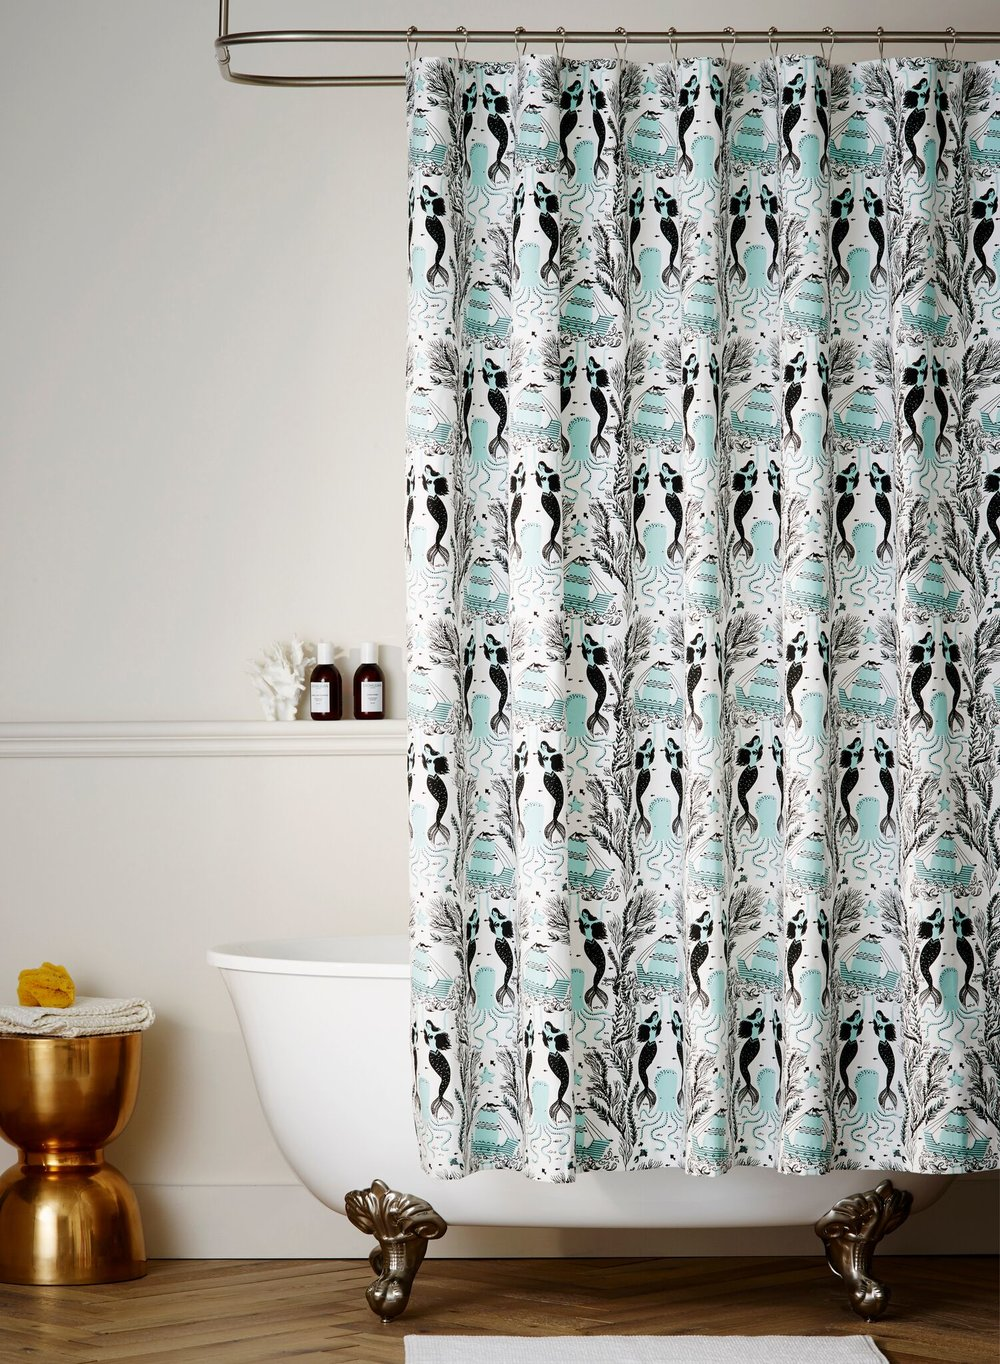 HW_MD001_ShowerCurtain_Mermaids_Ocean.jpg